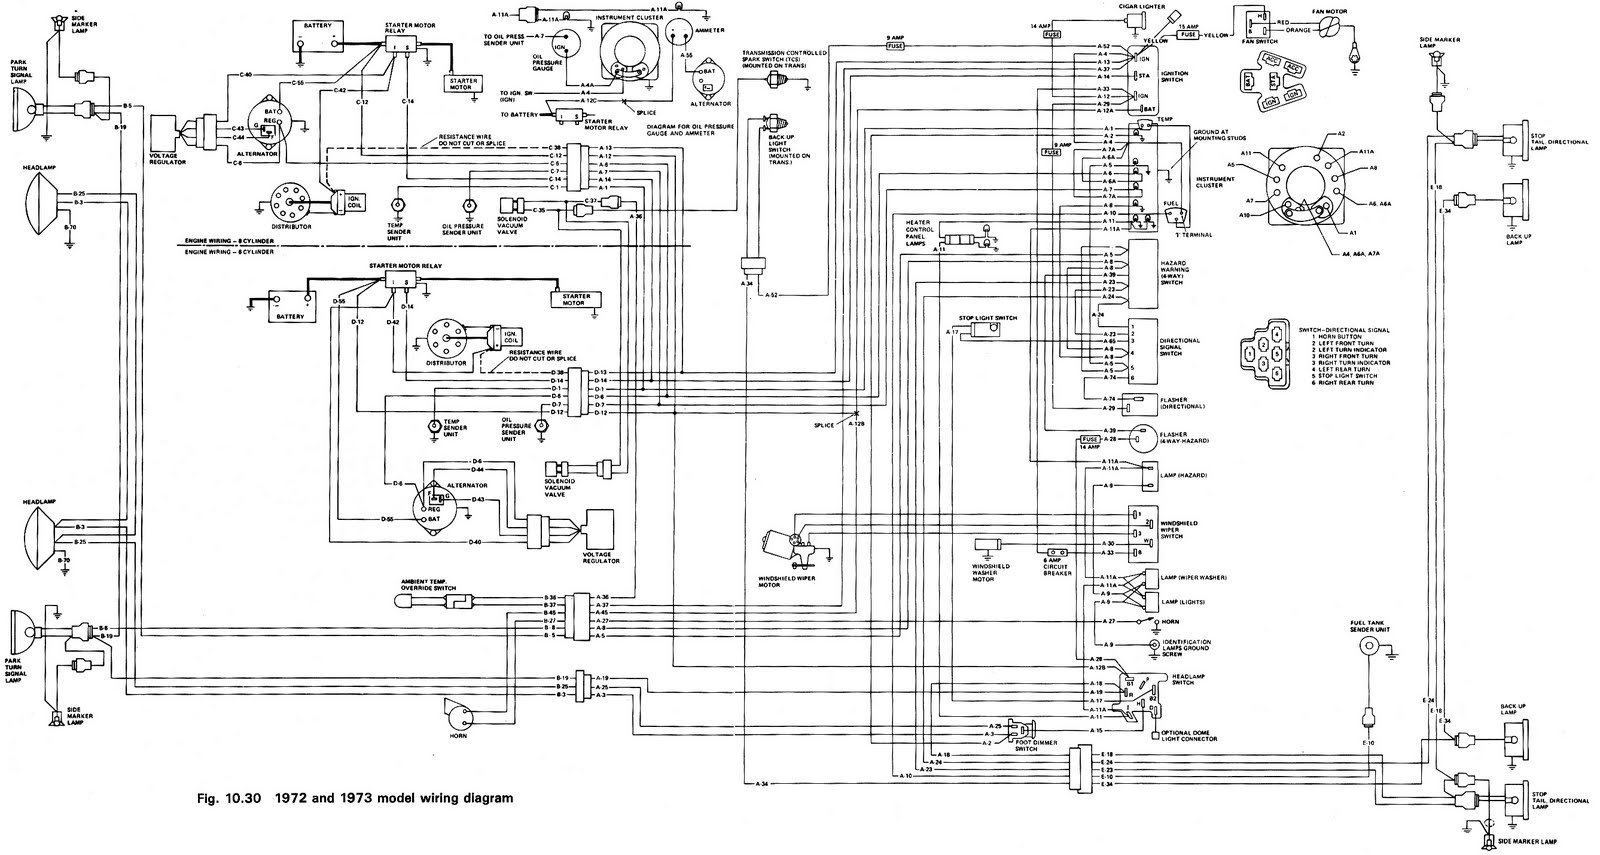 Jeep Cj5 Turn Signal Wiring Diagram Real Also Alternator On 77 74 Free Engine Image For User 1 Wire Ford Switch